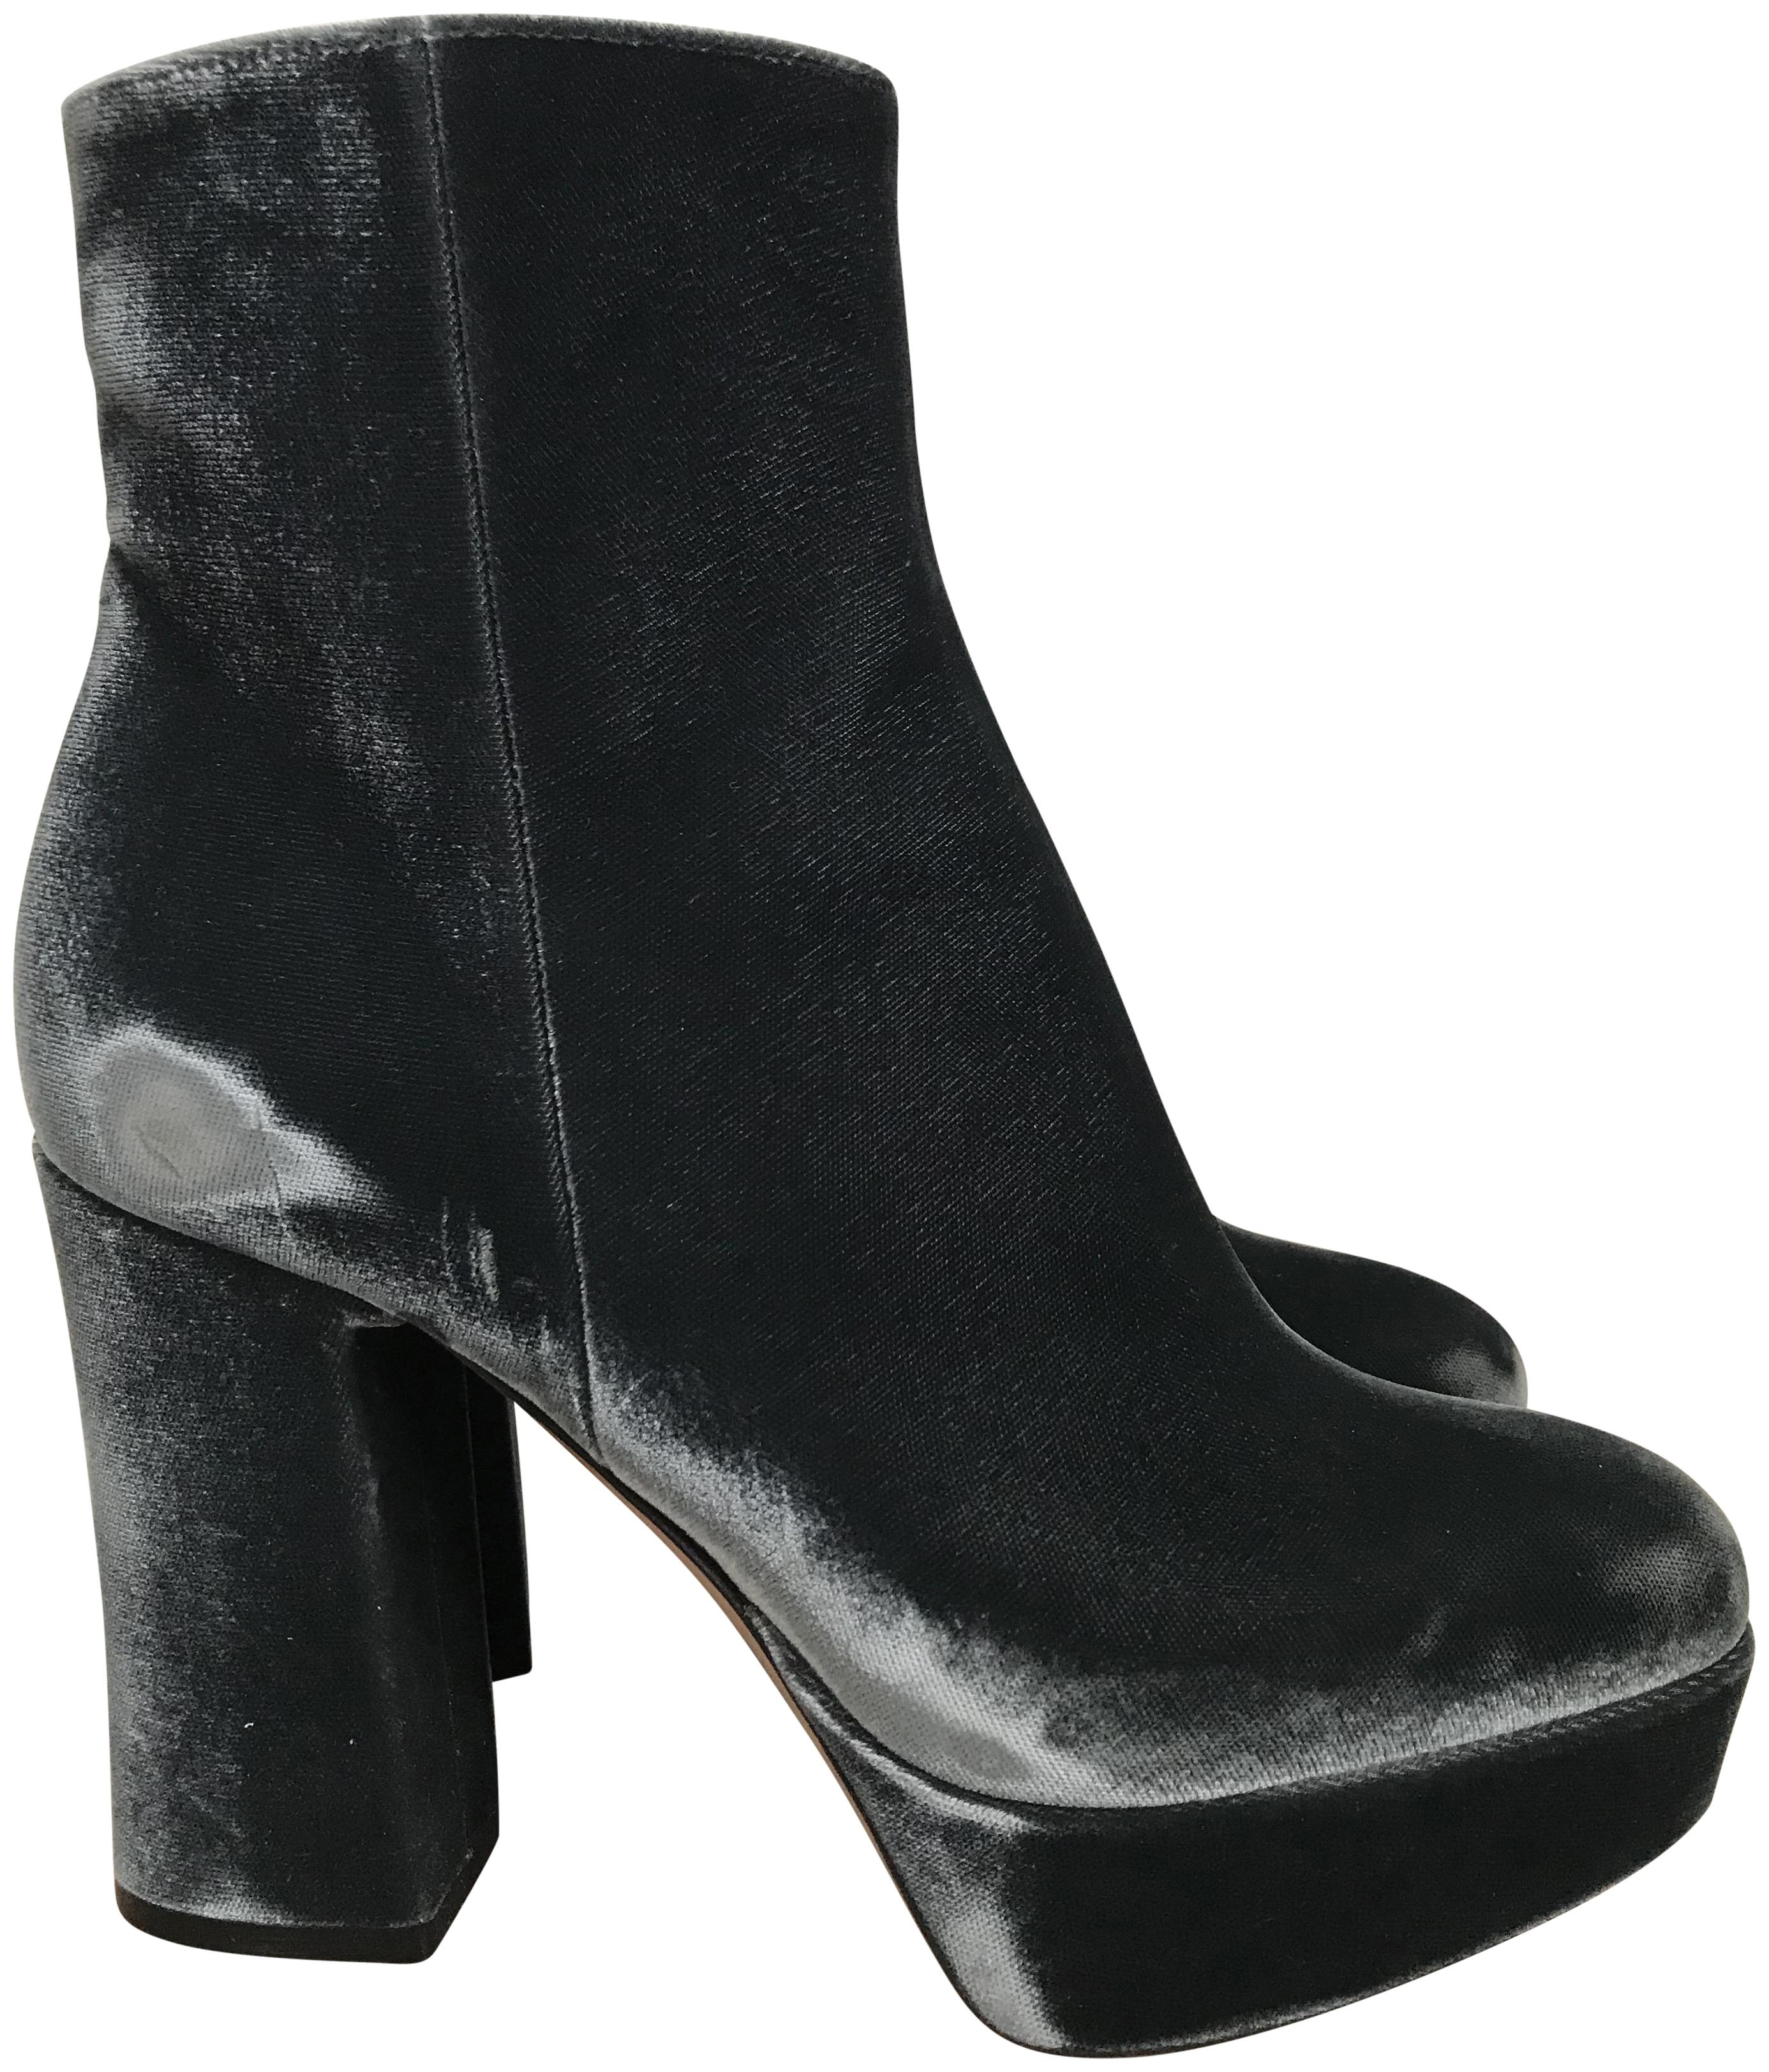 Gianvito Rossi Suede Platform Ankle Boots genuine sale online free shipping prices how much for sale Nx2te